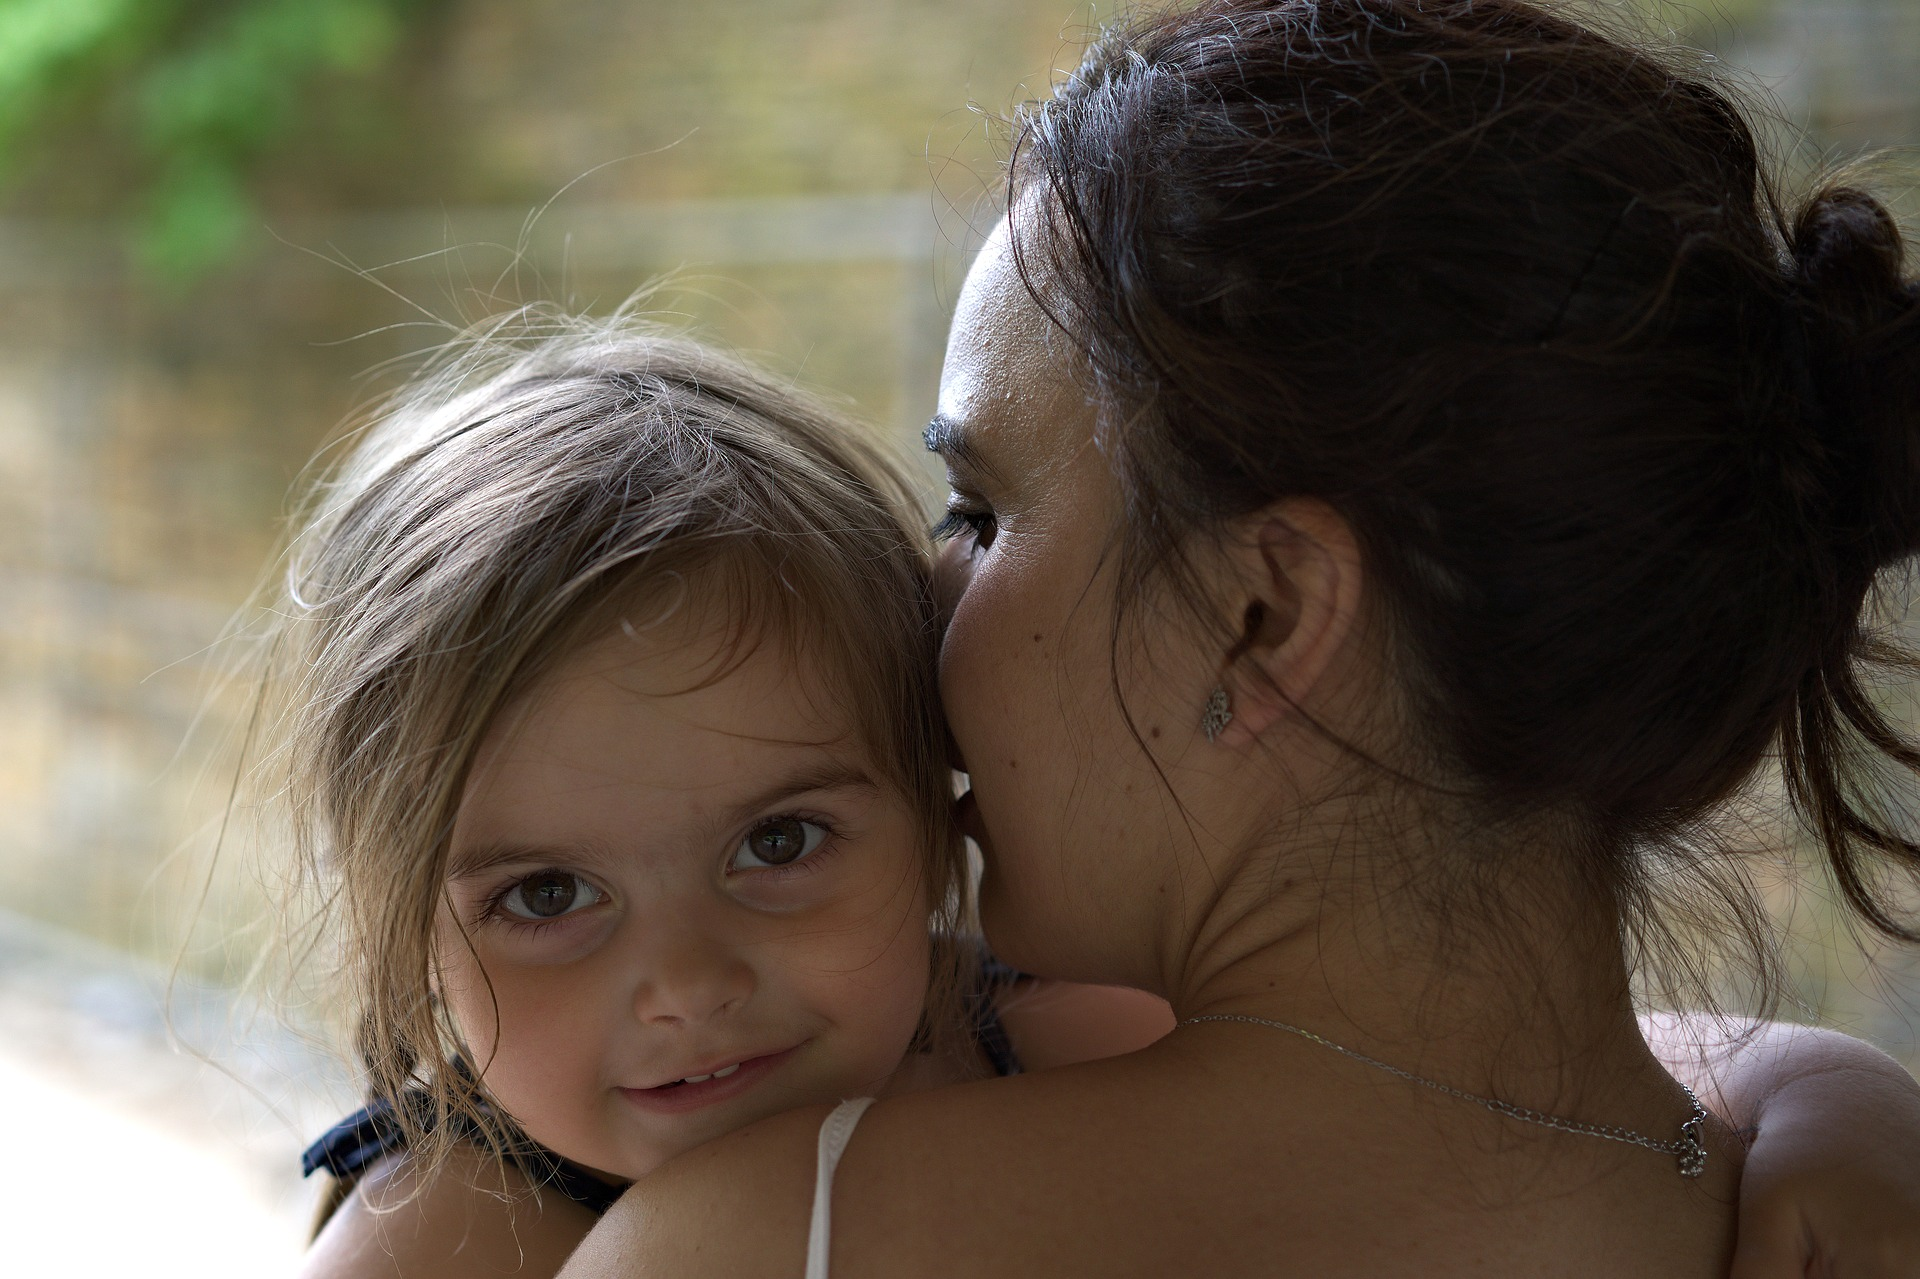 child-and-mom-2356369_1920